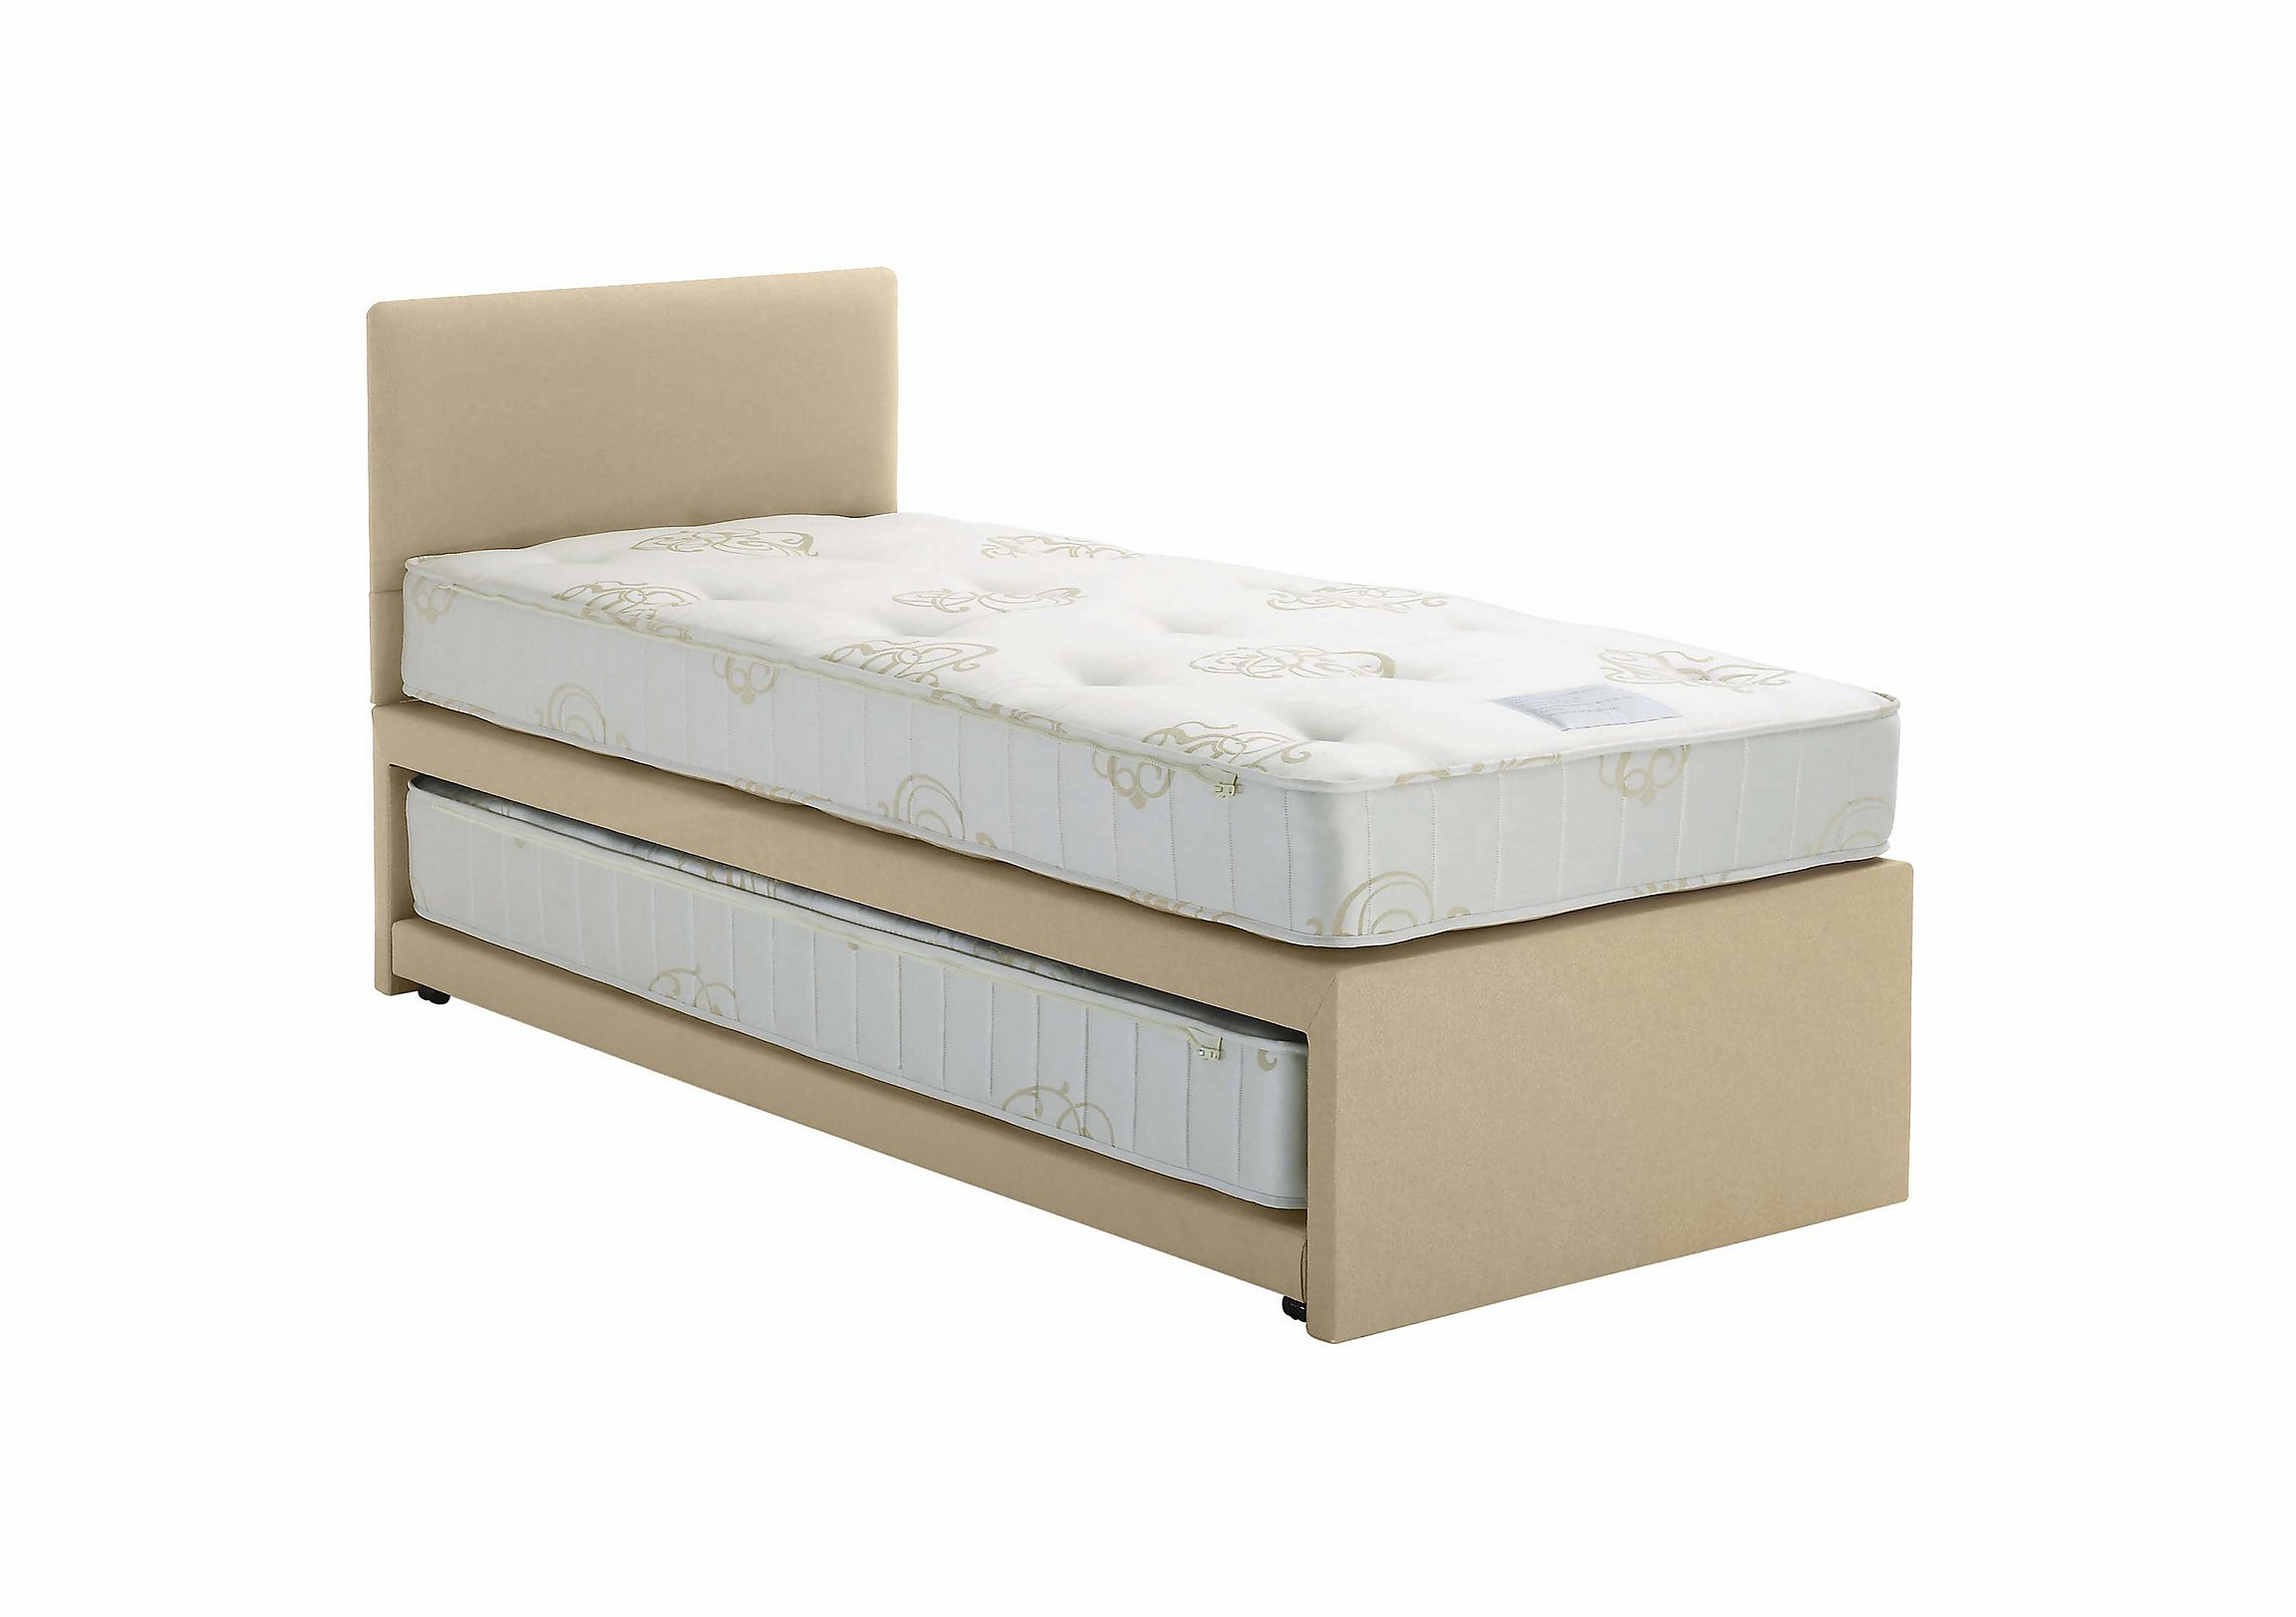 Hypnos Trio Guest Bed Free Delivery Best Price Promise